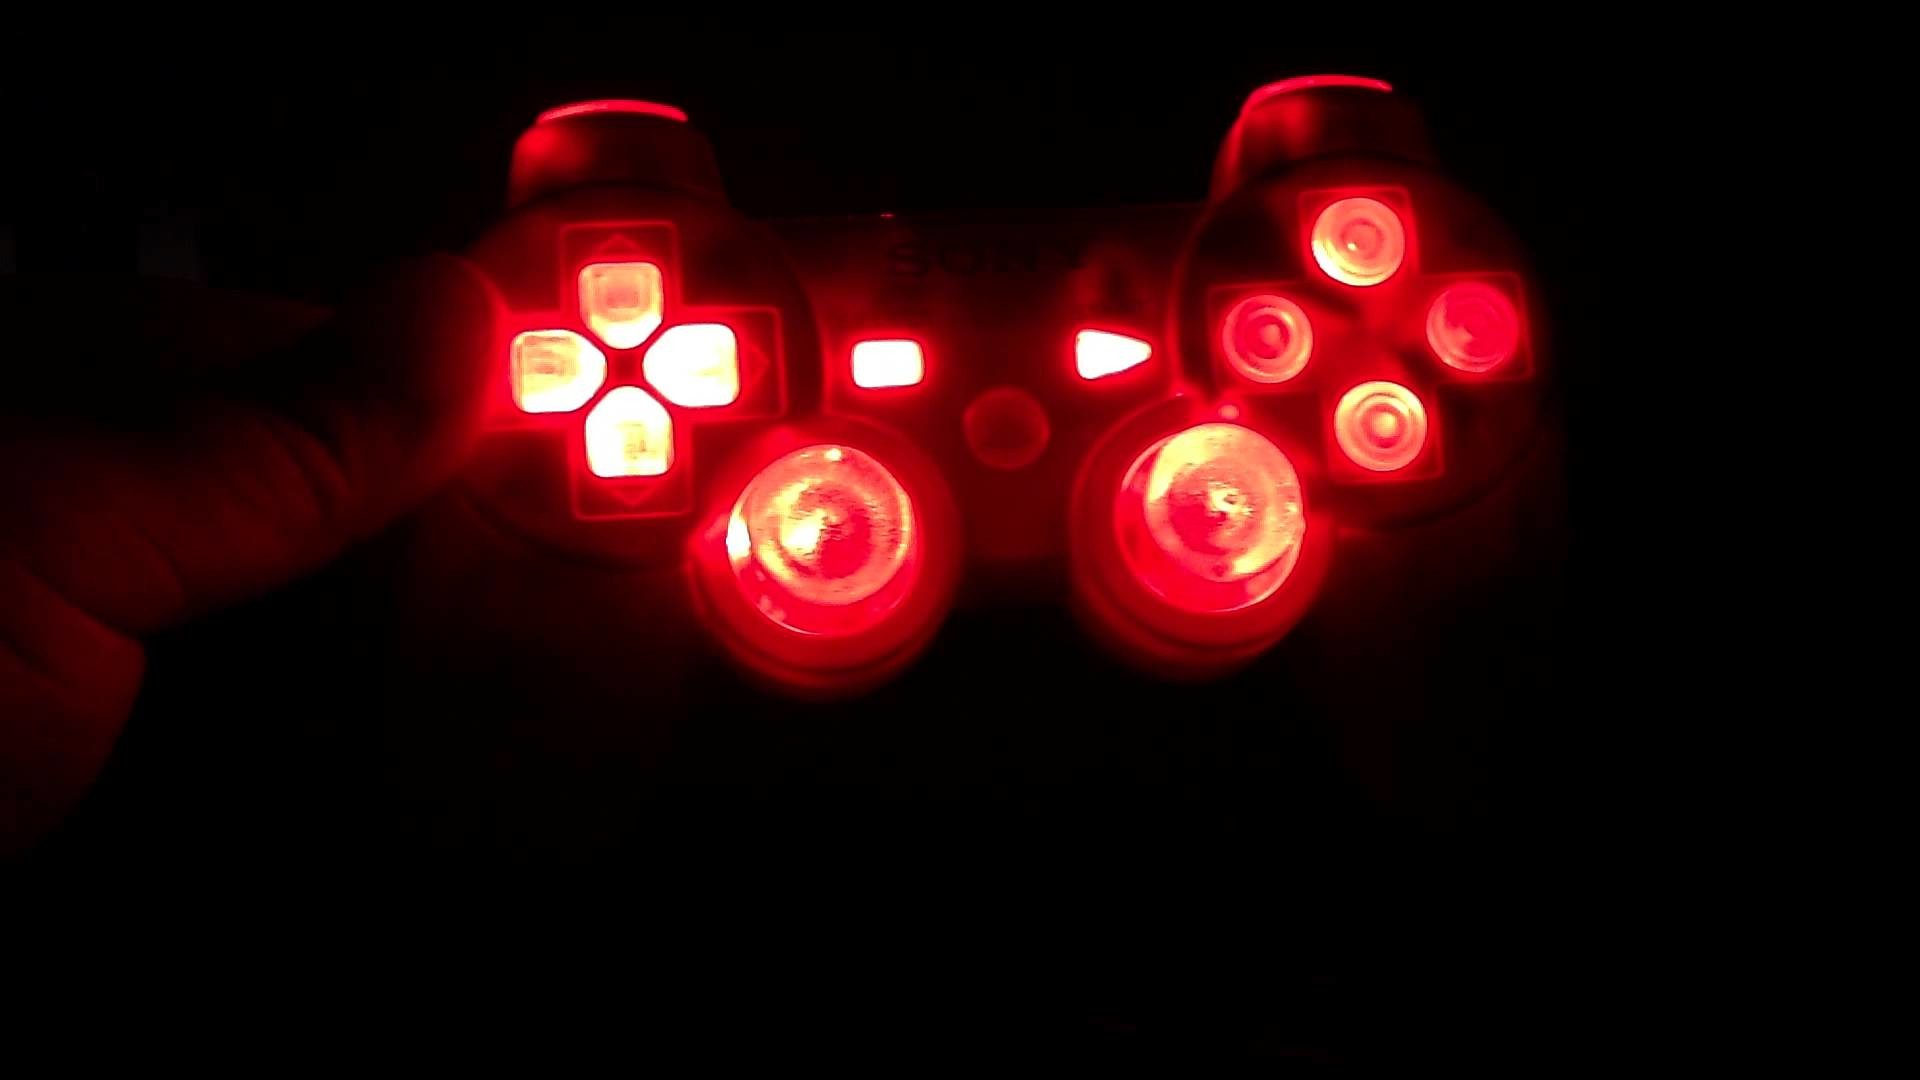 Res: 1920x1080, LED Modded Playstation 3 Controller With RED Lights On ALL Buttons (PS3)  2012 - YouTube